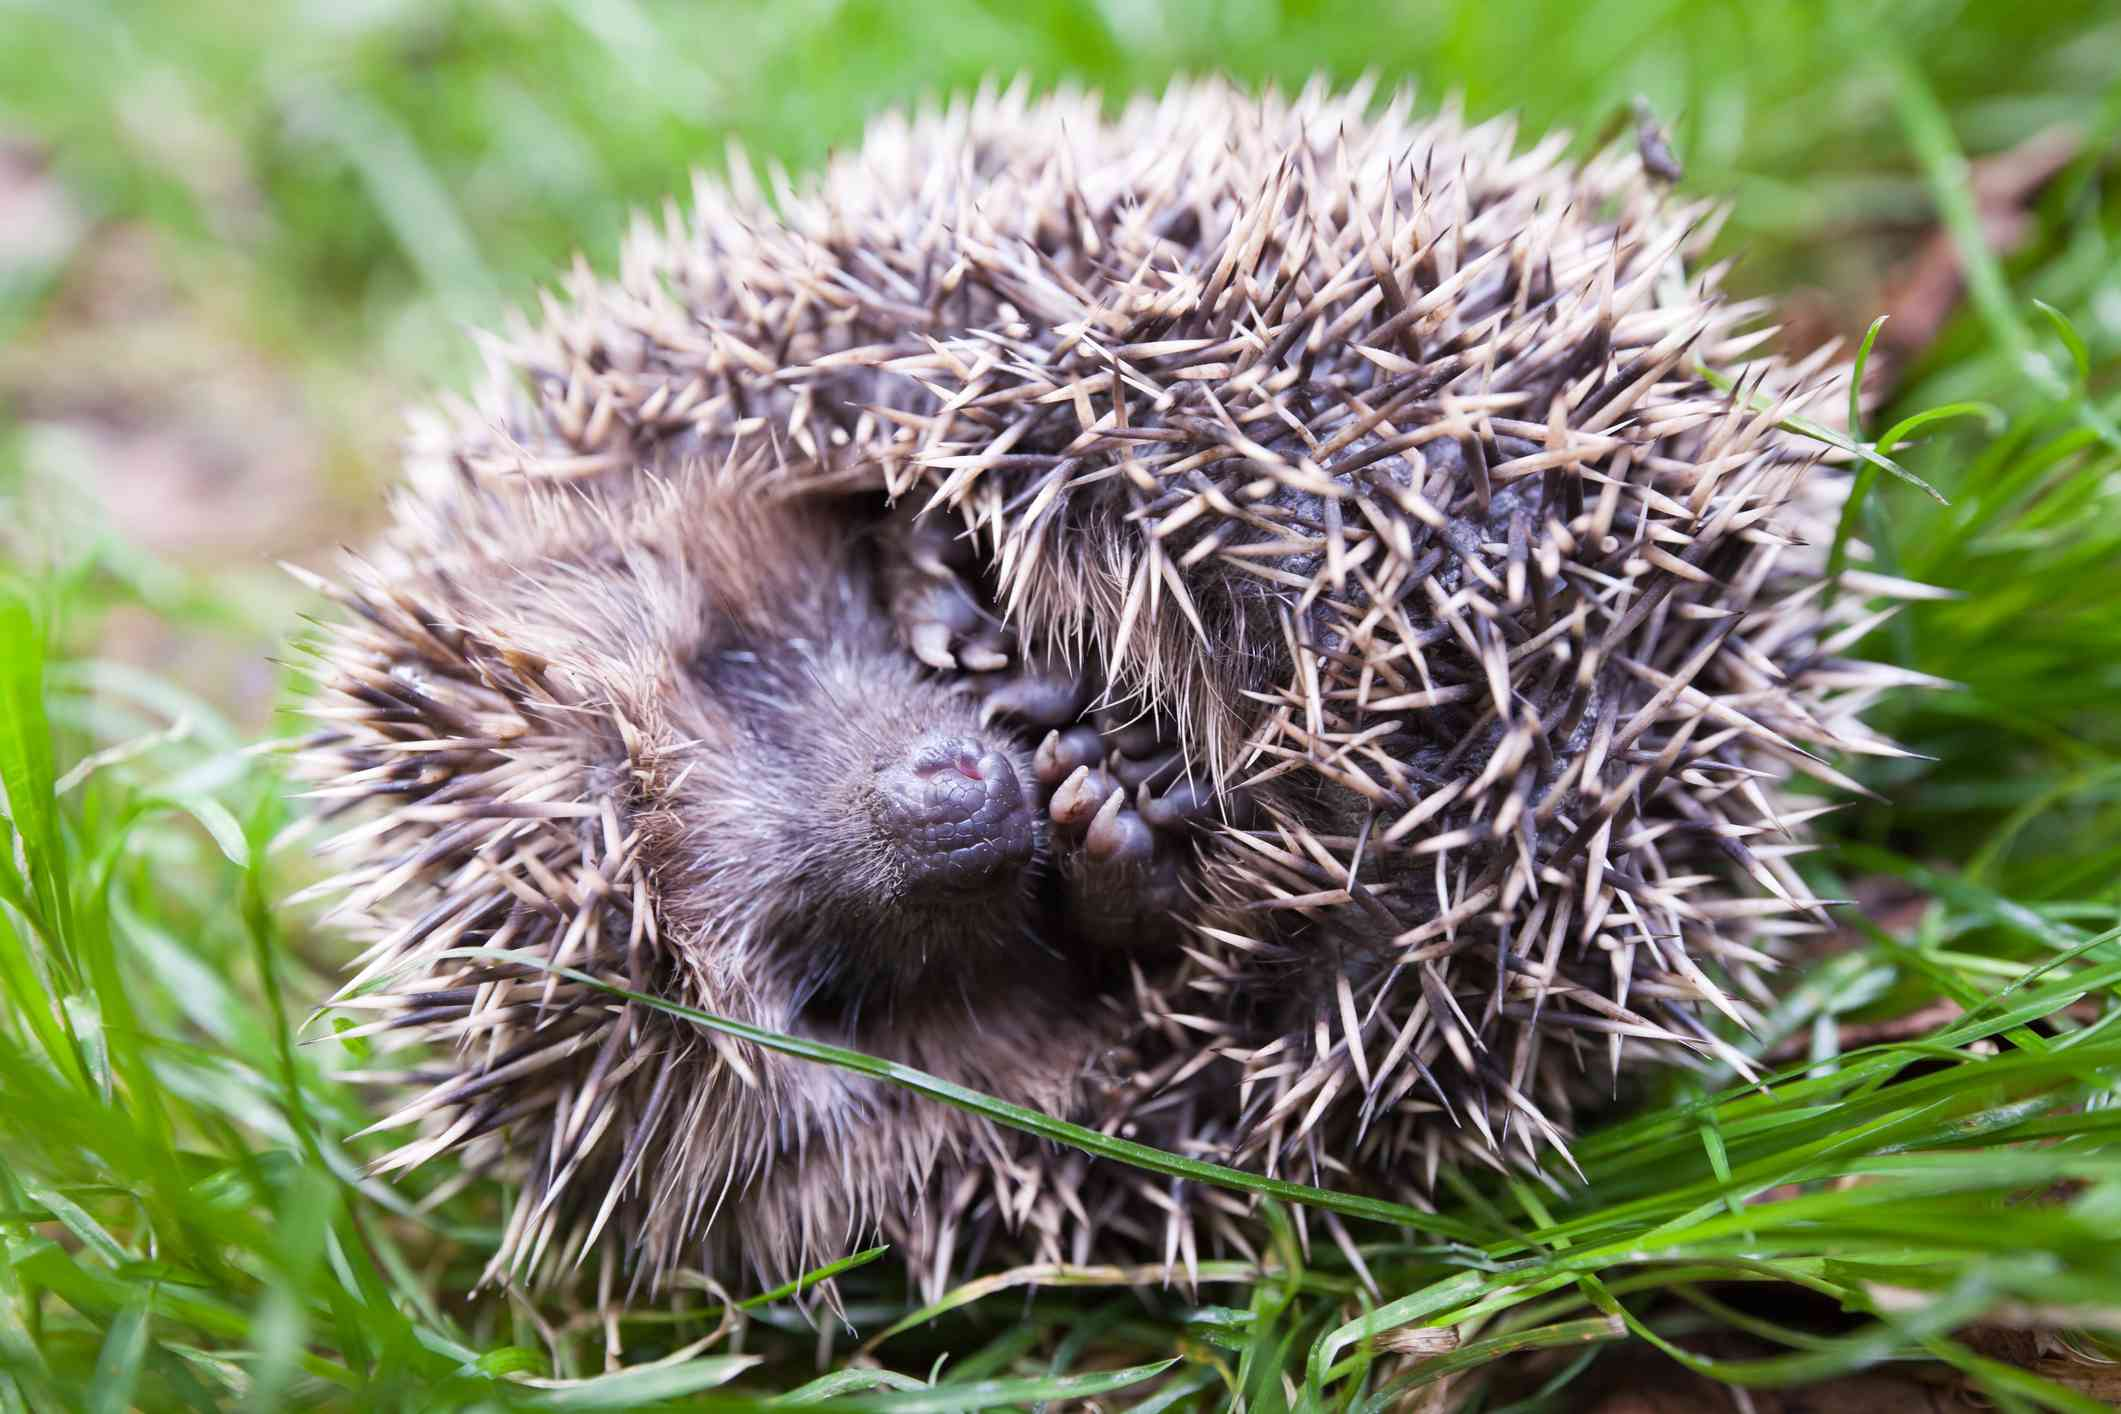 A frightened hedgehog rolled into a ball